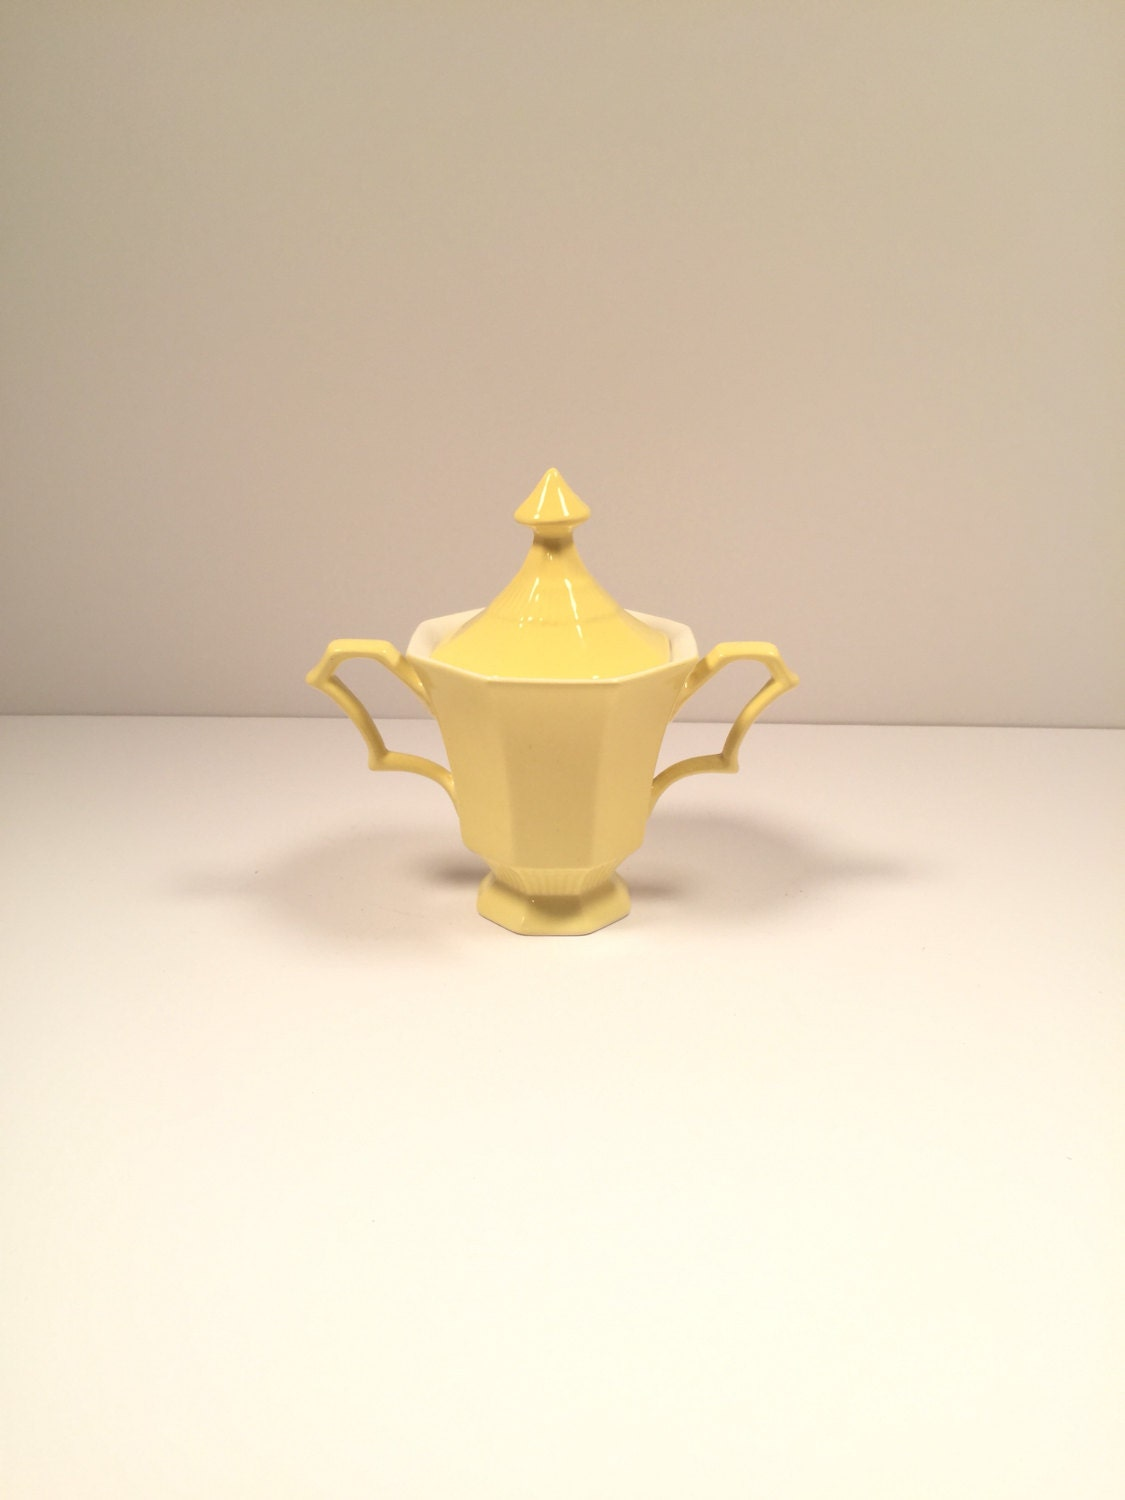 Yellow sugar bowls with lids - Like This Item